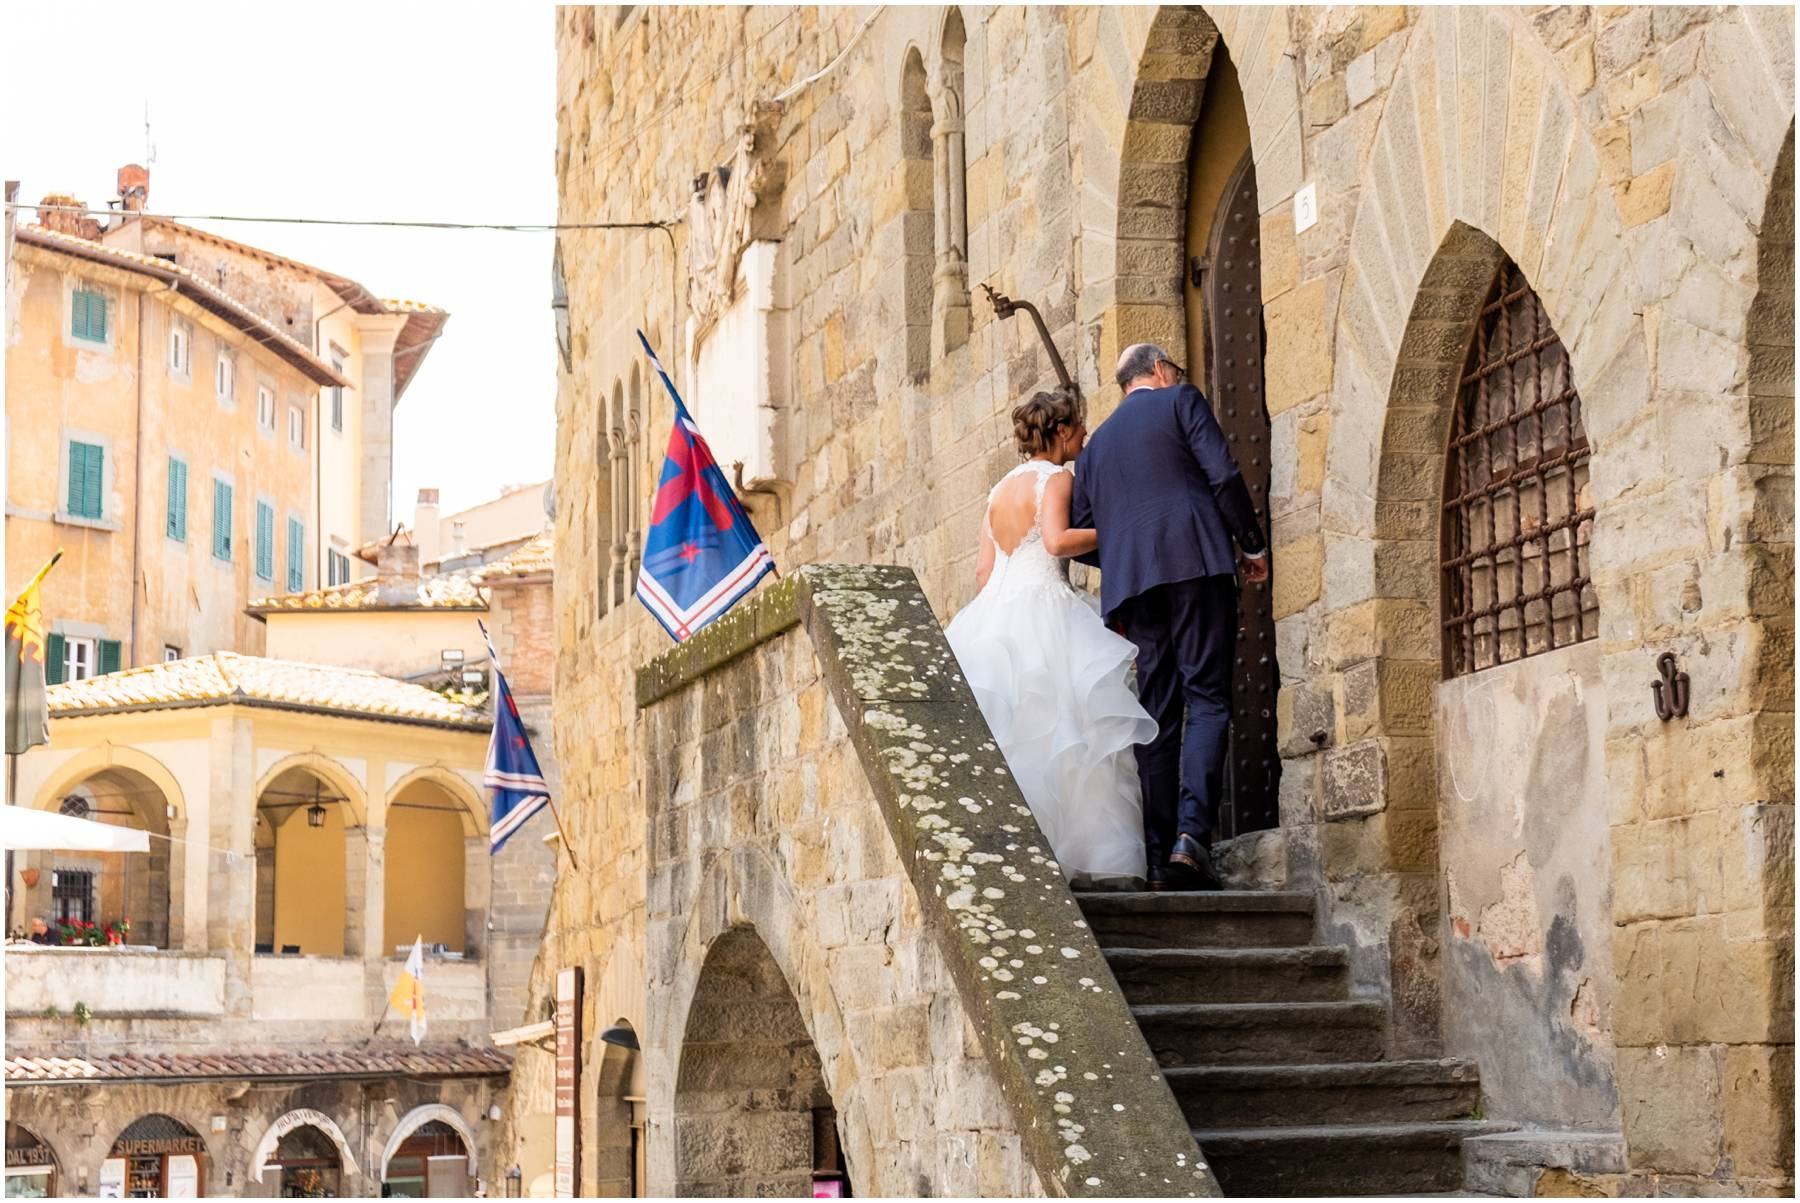 Cortona is a beautiful setting for getting married like this bride who was about to enter the church doors to walk down the aisle to meet her groom. It's also an amazing place to have your honeymoon!